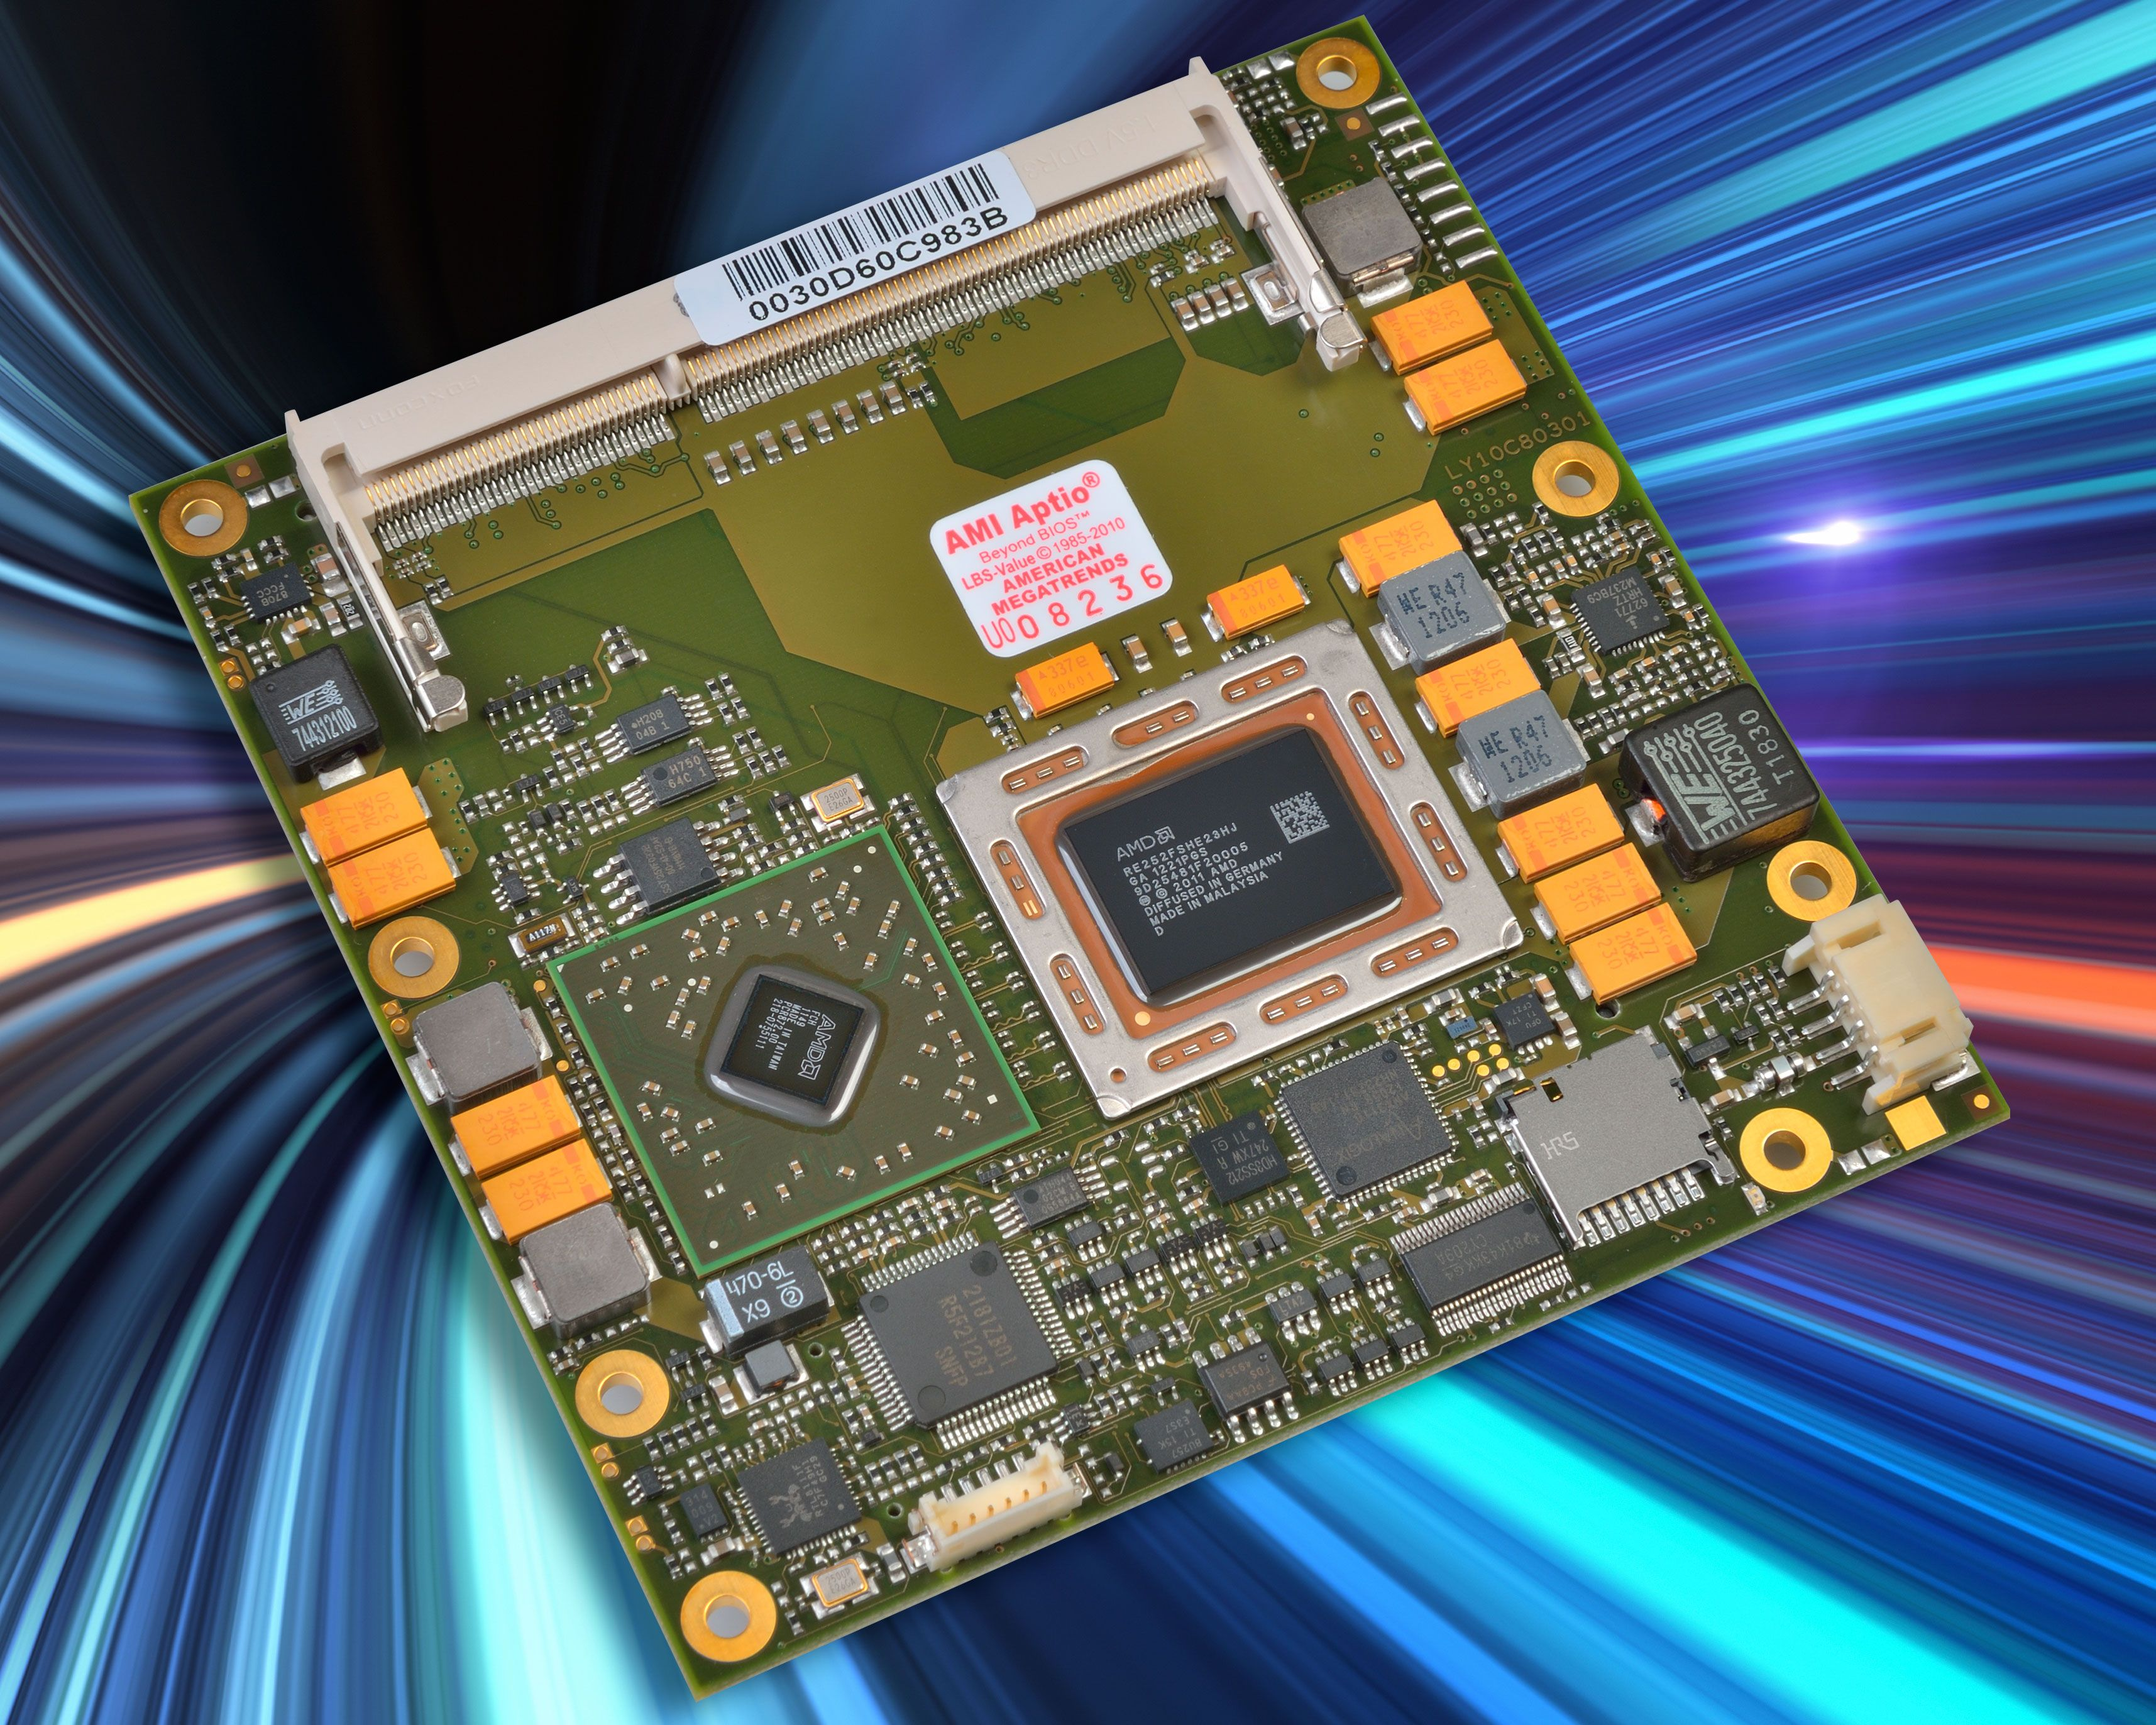 Figure 1: The MSC C6C-A7, a COM Express Type 6 high-performance module family in compact form factor, is based on AMD's Embedded R-Series Accelerated Processing Units (APUs)